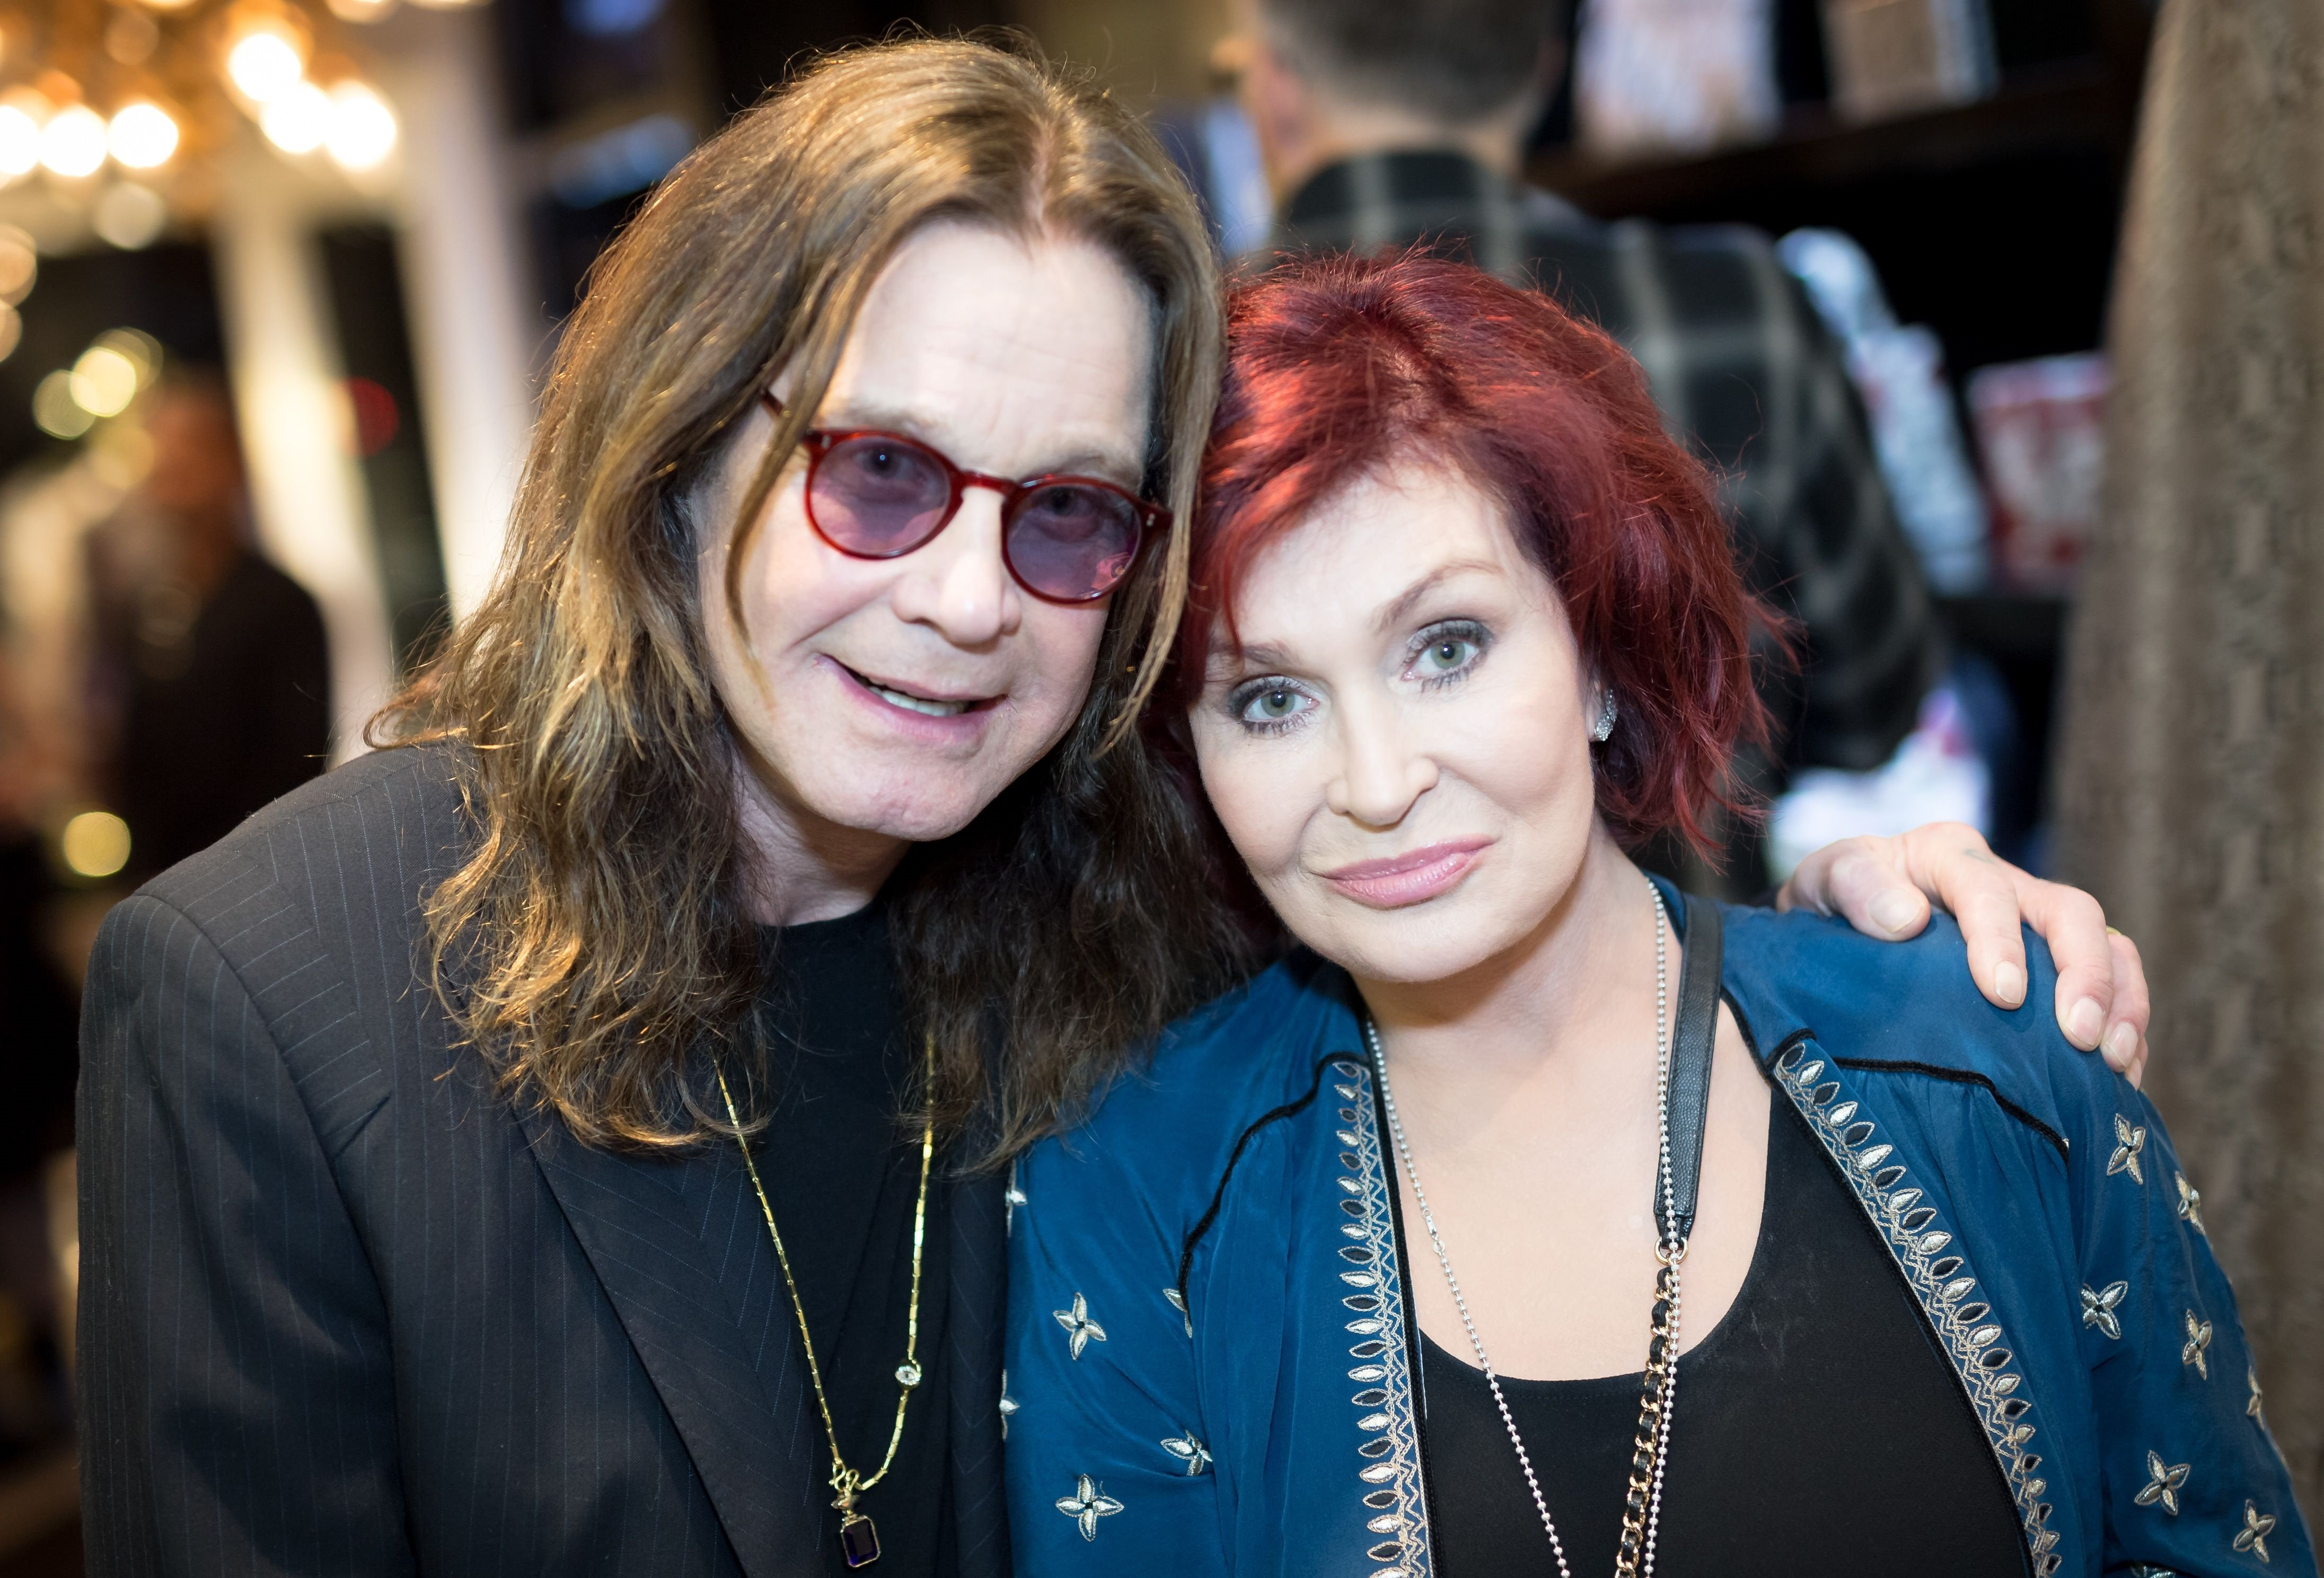 Ozzy Osbourne and Sharon Osbourne at the Billy Morrison - Aude Somnia Solo Exhibition at Elisabeth Weinstock on September 28, 2017 in Los Angeles, California. | Photo: Getty Images